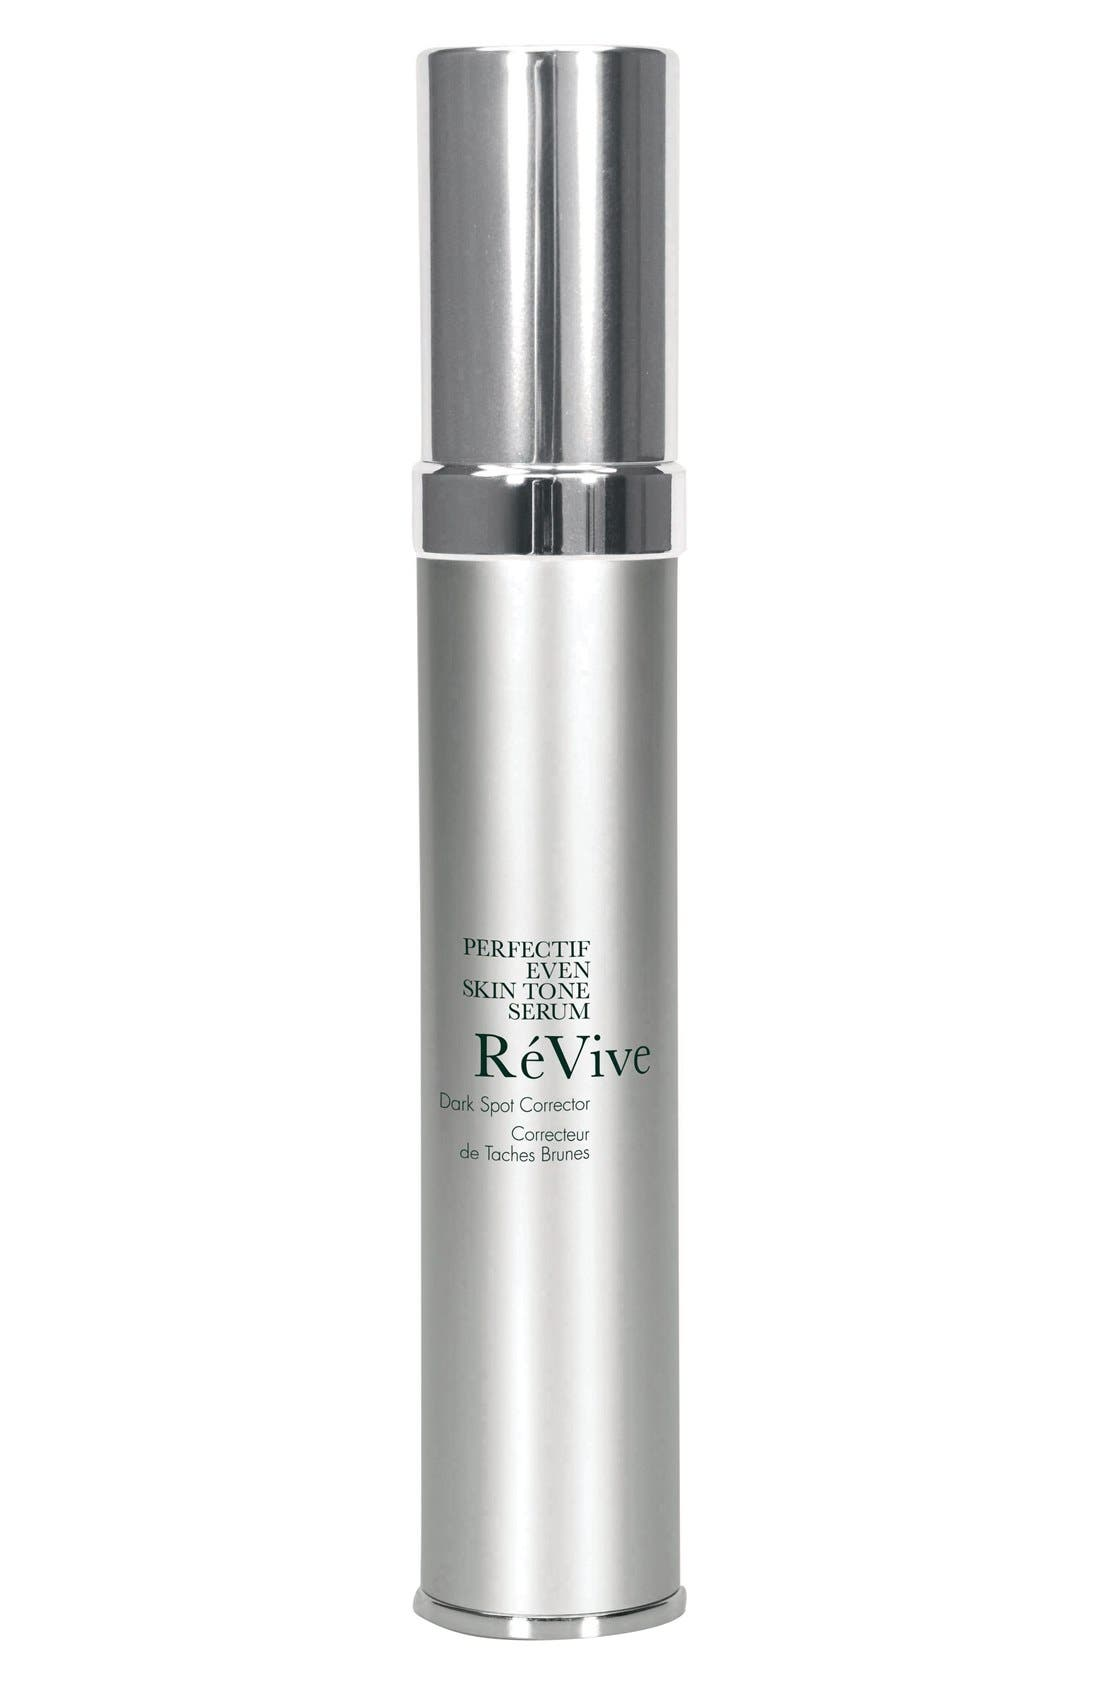 RéVive® Perfectif Even Skin Tone Serum